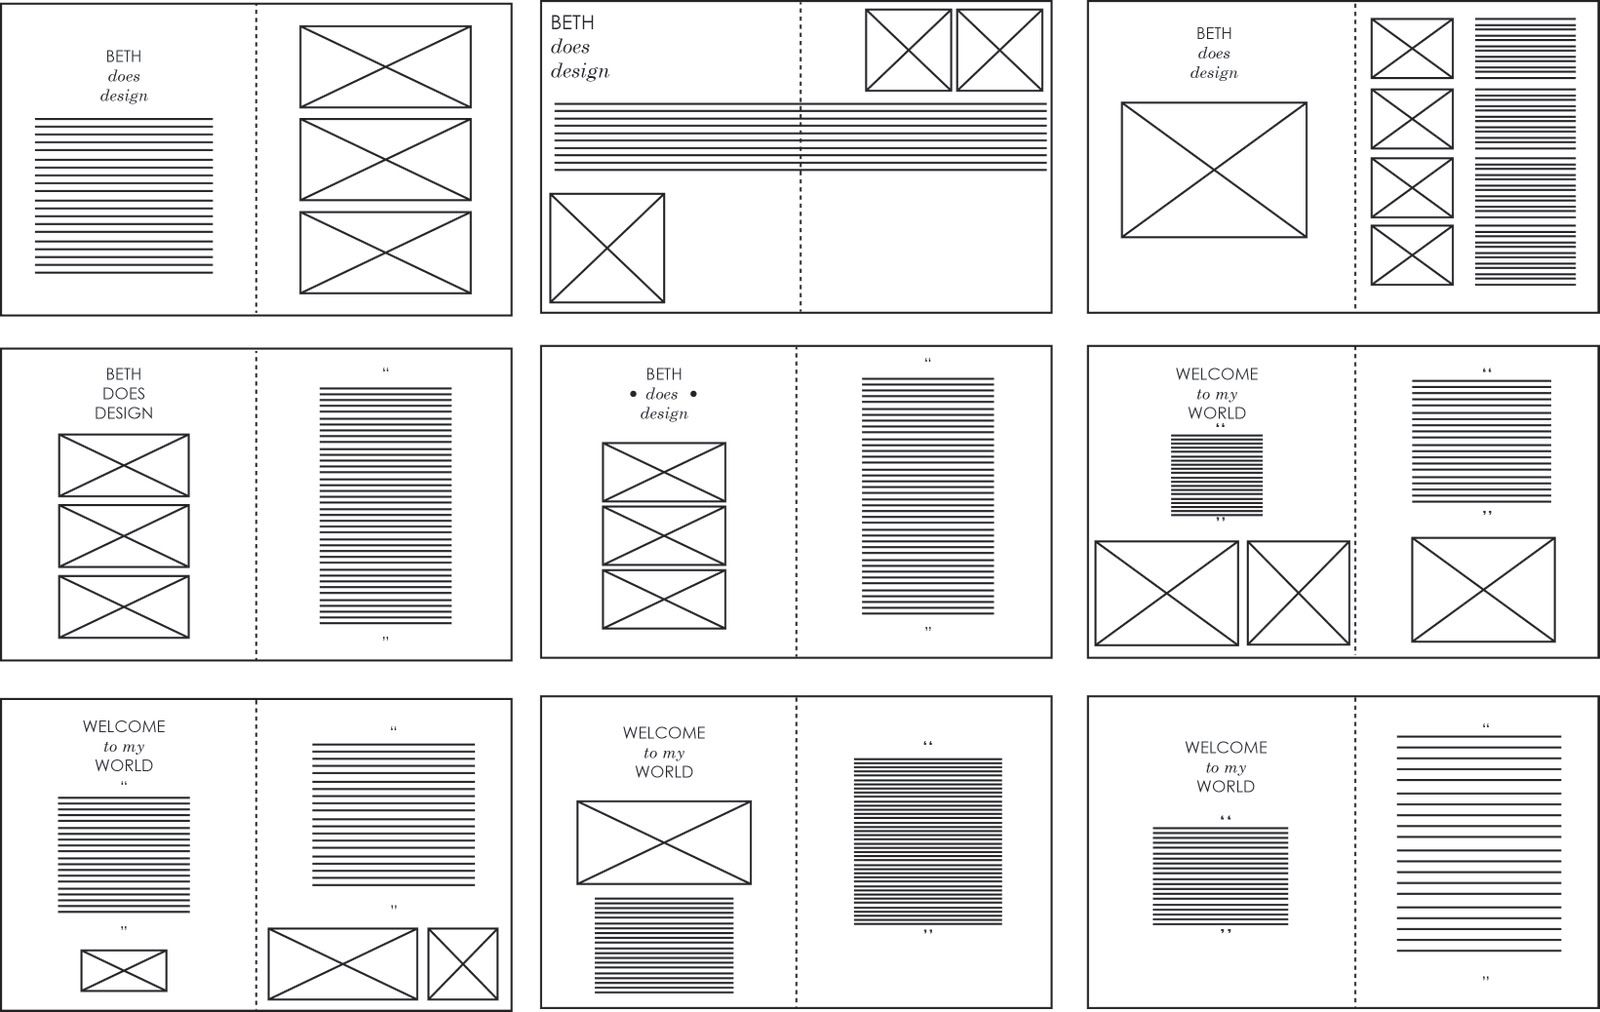 sophie wilson design practice indesign layouts vectored magazine pinterest template. Black Bedroom Furniture Sets. Home Design Ideas